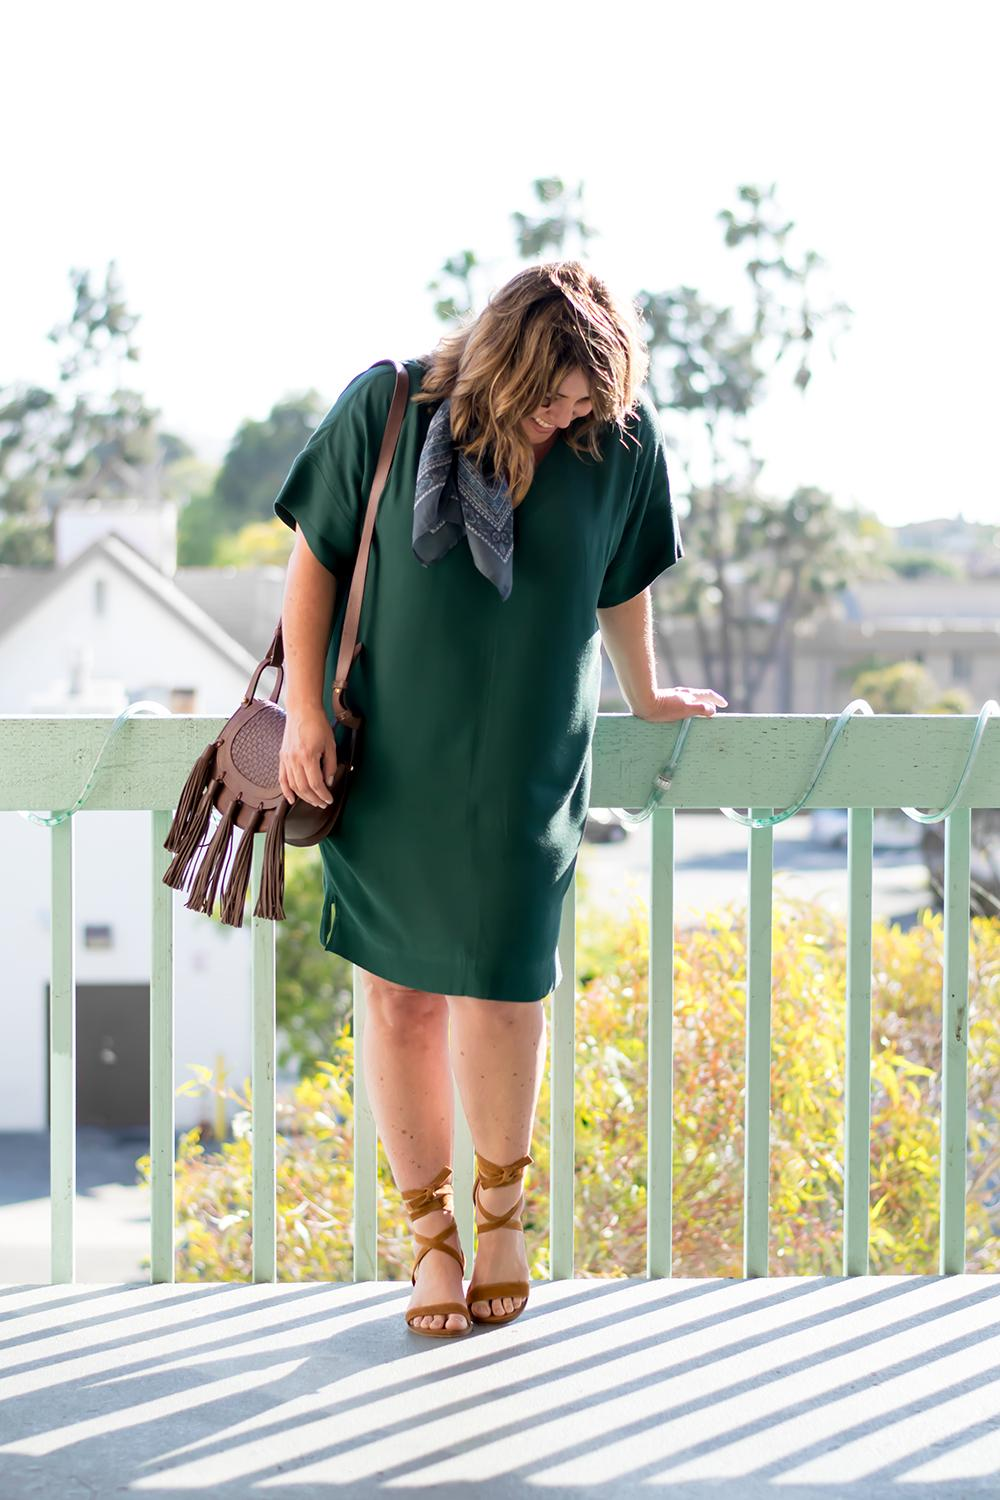 Brunch-Outfit-Ideas-The-Biggest-Trends-for-2017-Barefoot-in-LA-Fashion-Blog-Style-Madewell-DSC_0837